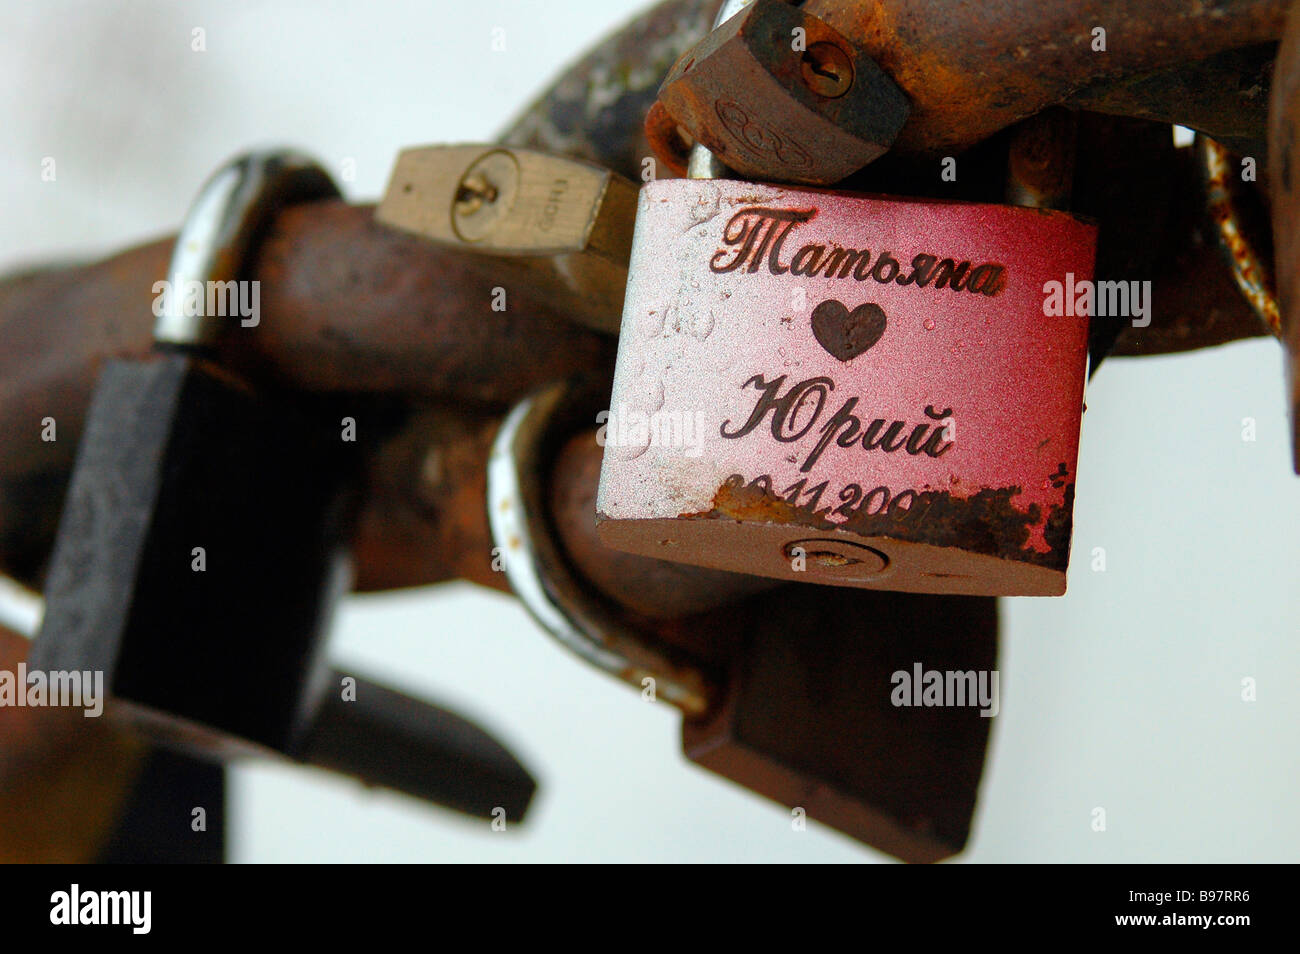 Padlocks love forever rust Cyrillic chain promise lock chain together commitment marriage symbolic key keylock keychain, - Stock Image